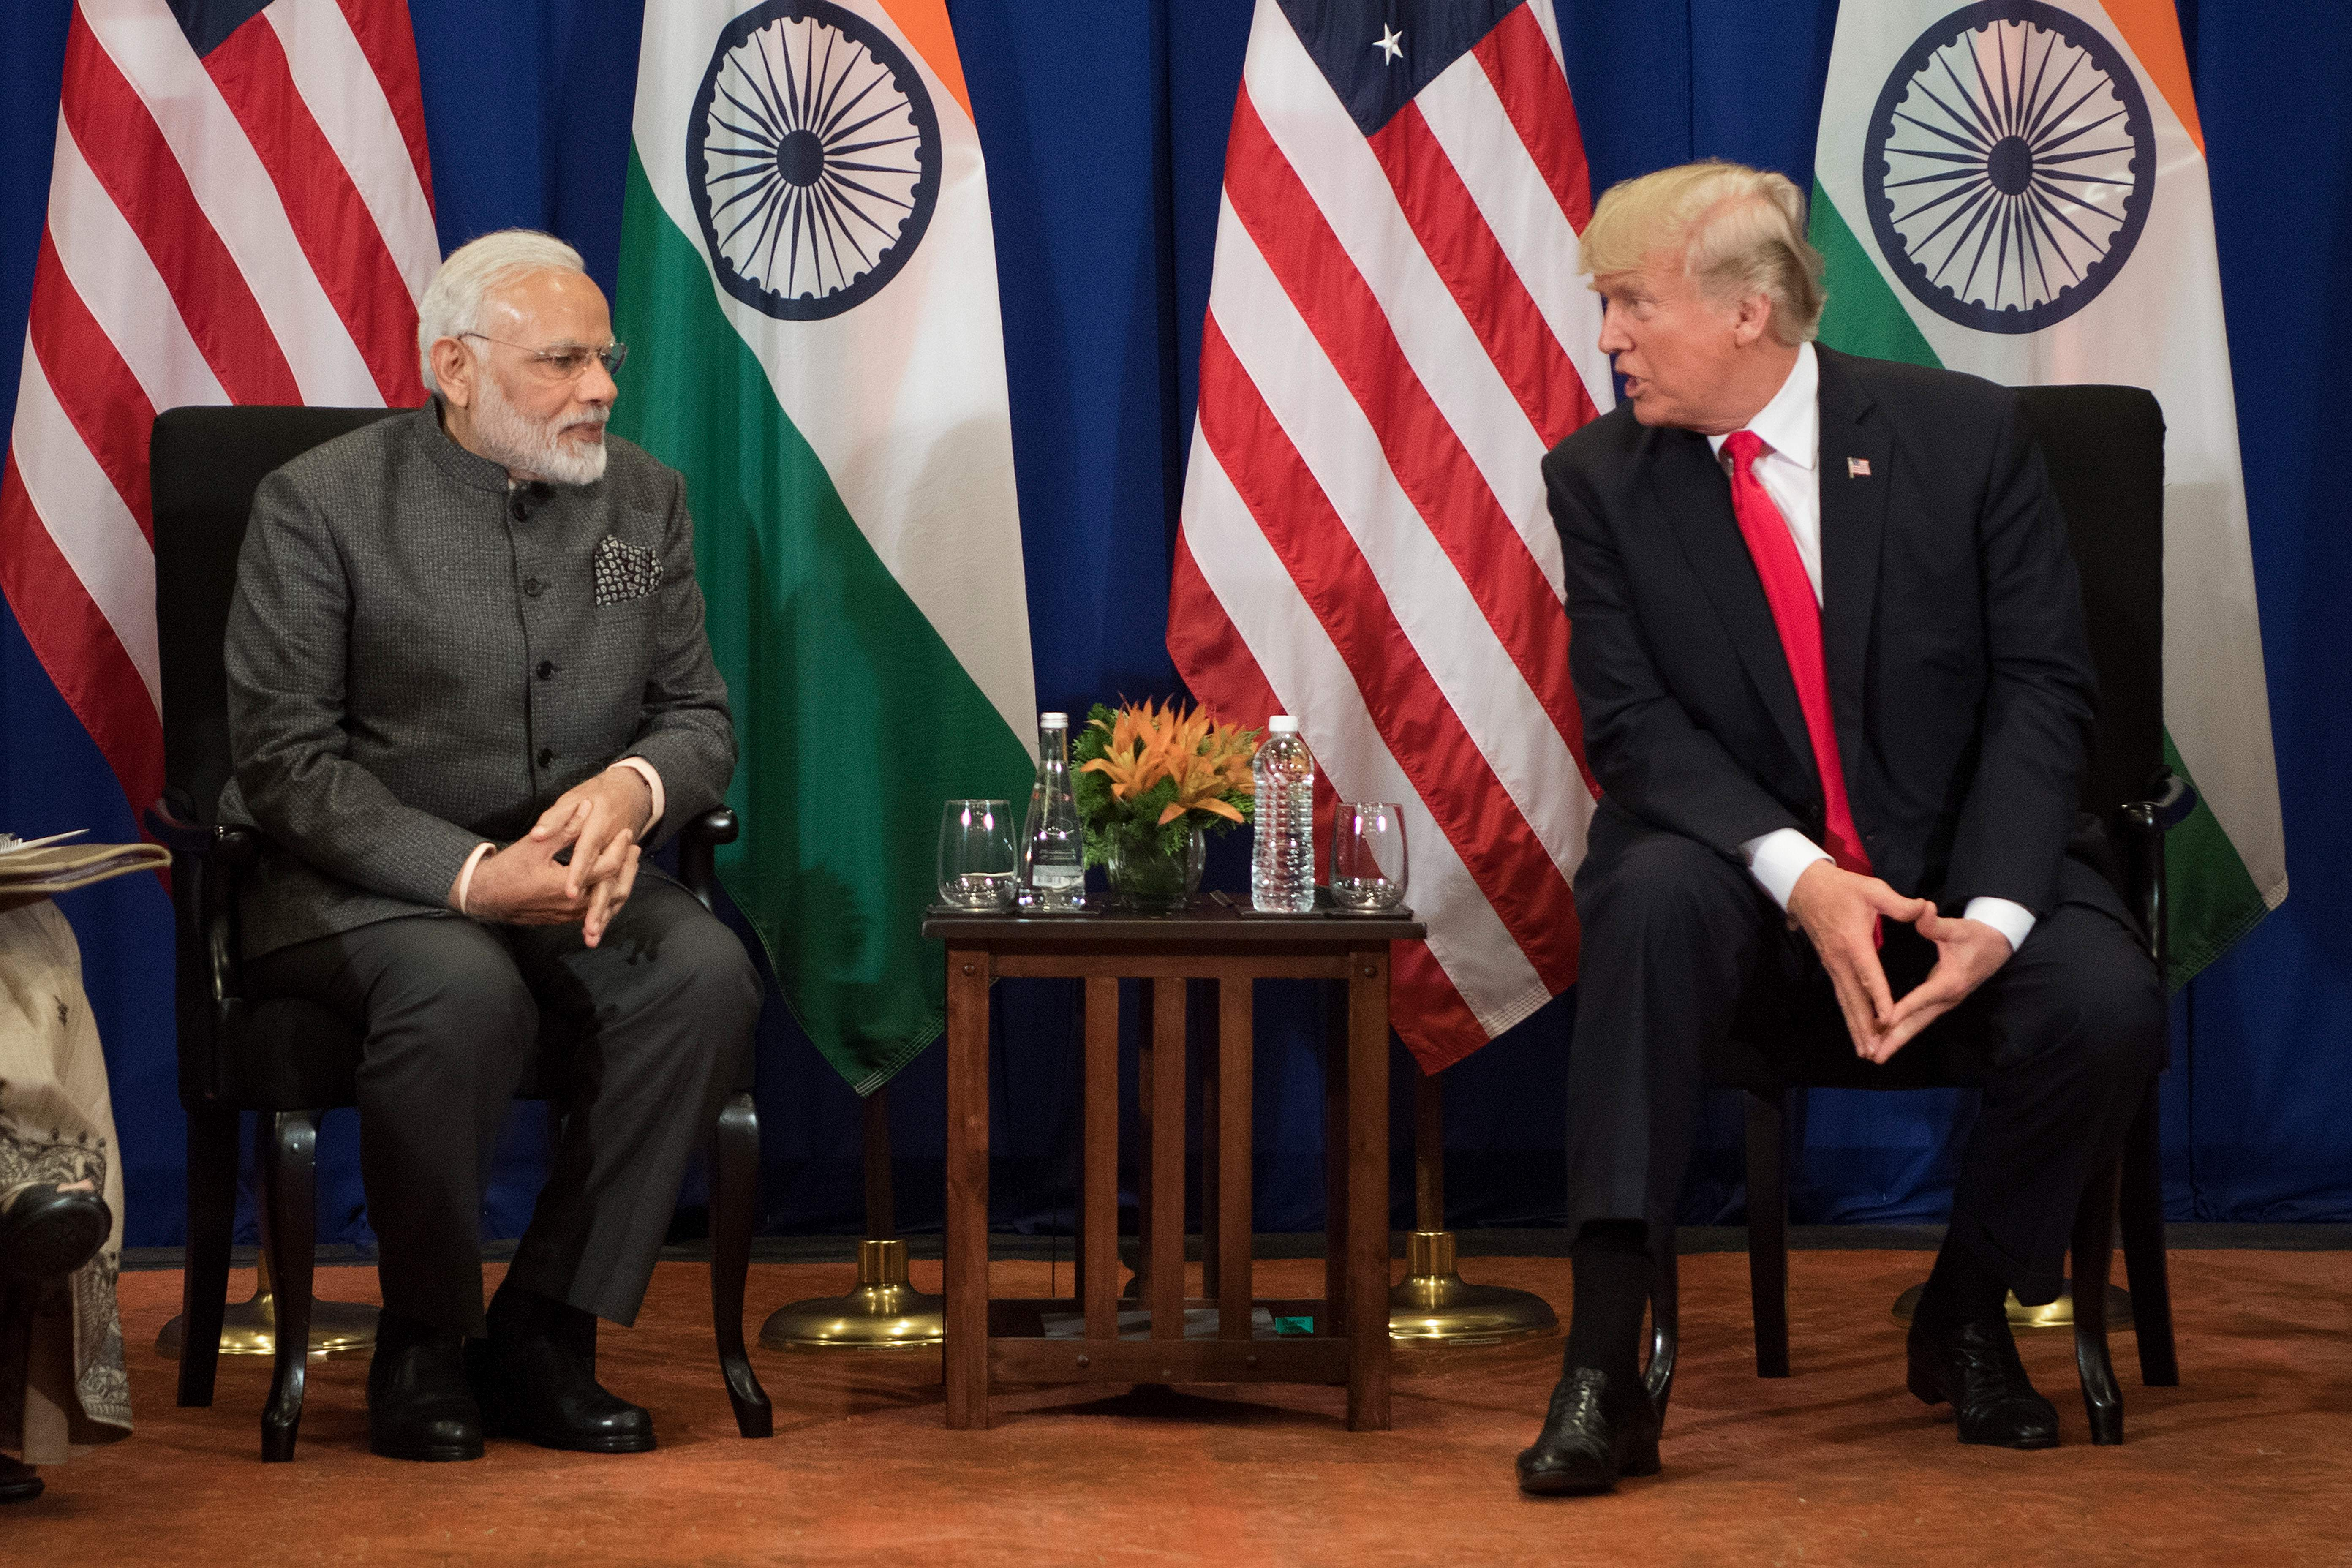 US President Donald Trump (R) speaks with Indian Prime Minister Narendra Modi during a bilateral meeting on the sideline of the 31st Association of Southeast Asian Nations (ASEAN) Summit in Manila on November 13, 2017.